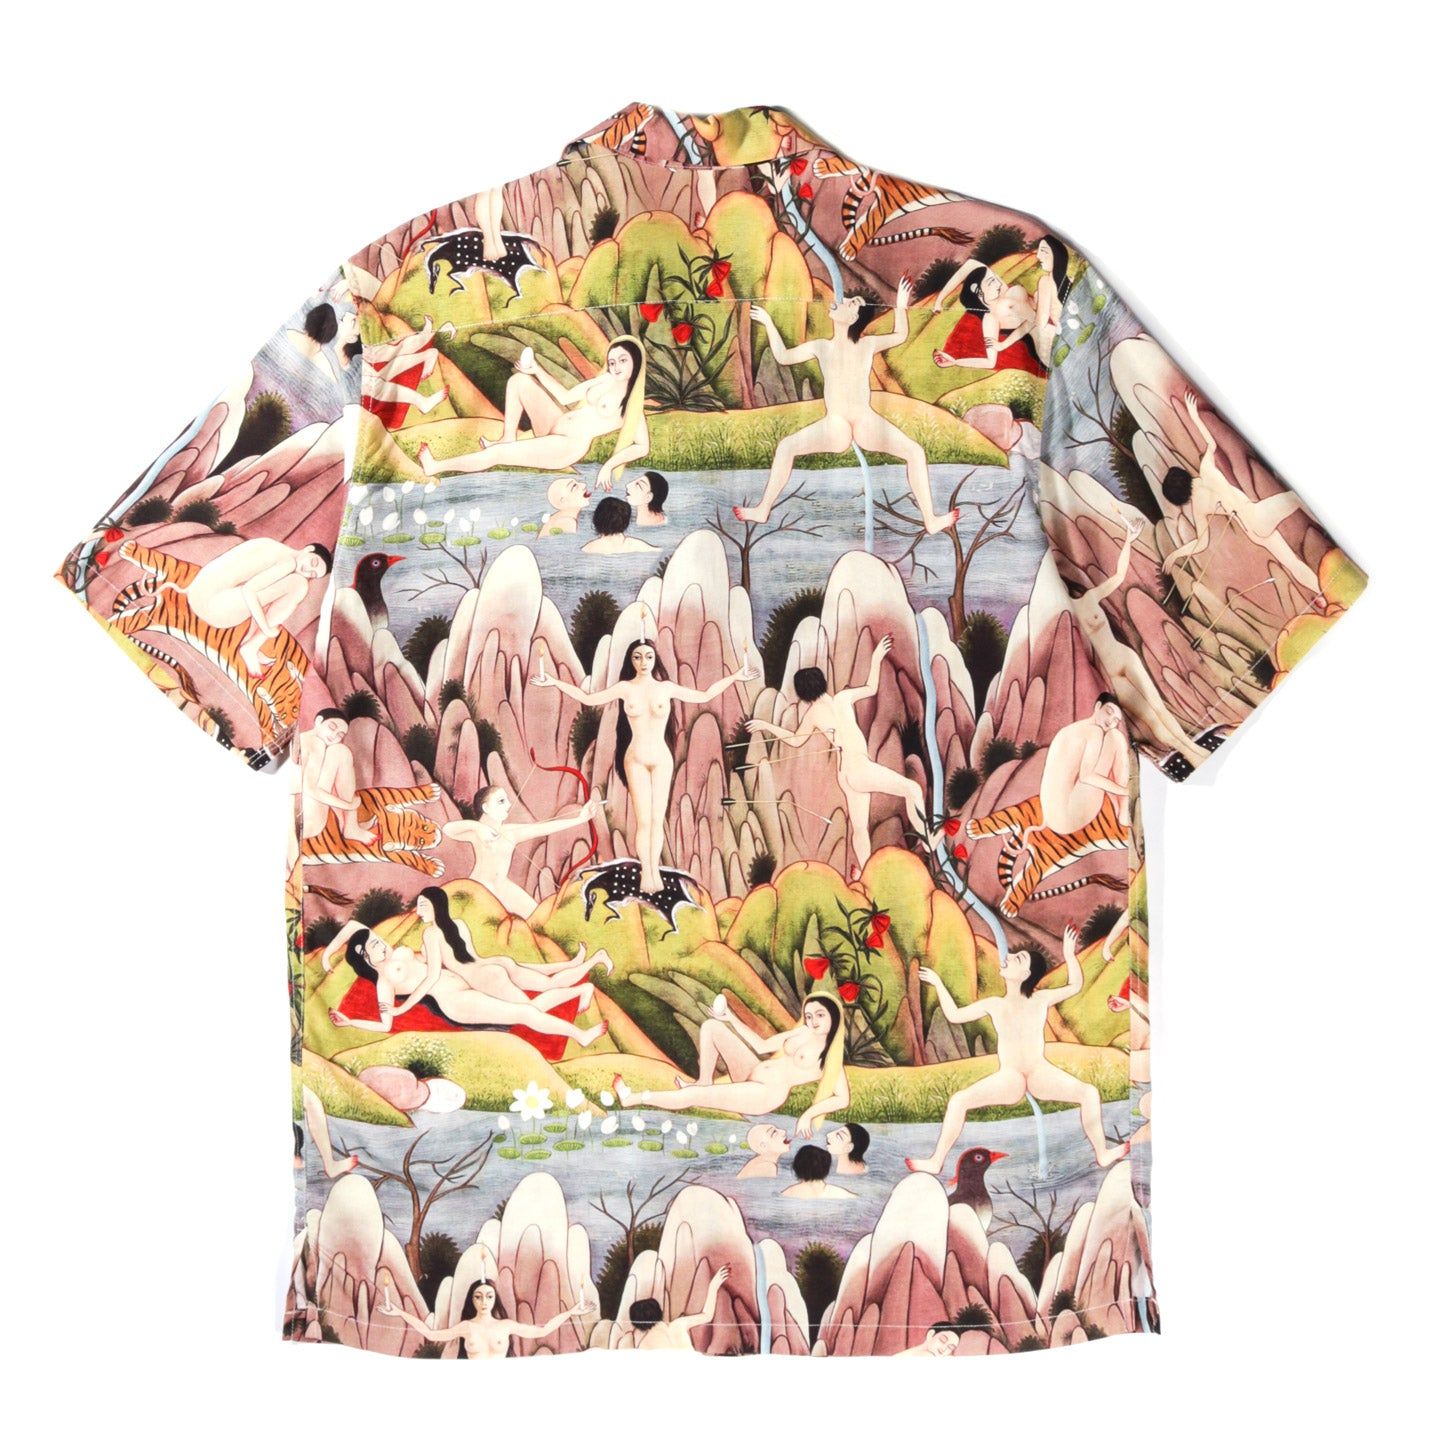 ENDLESS JOY 'TOWARDS A CENTRE' ALOHA SHIRT